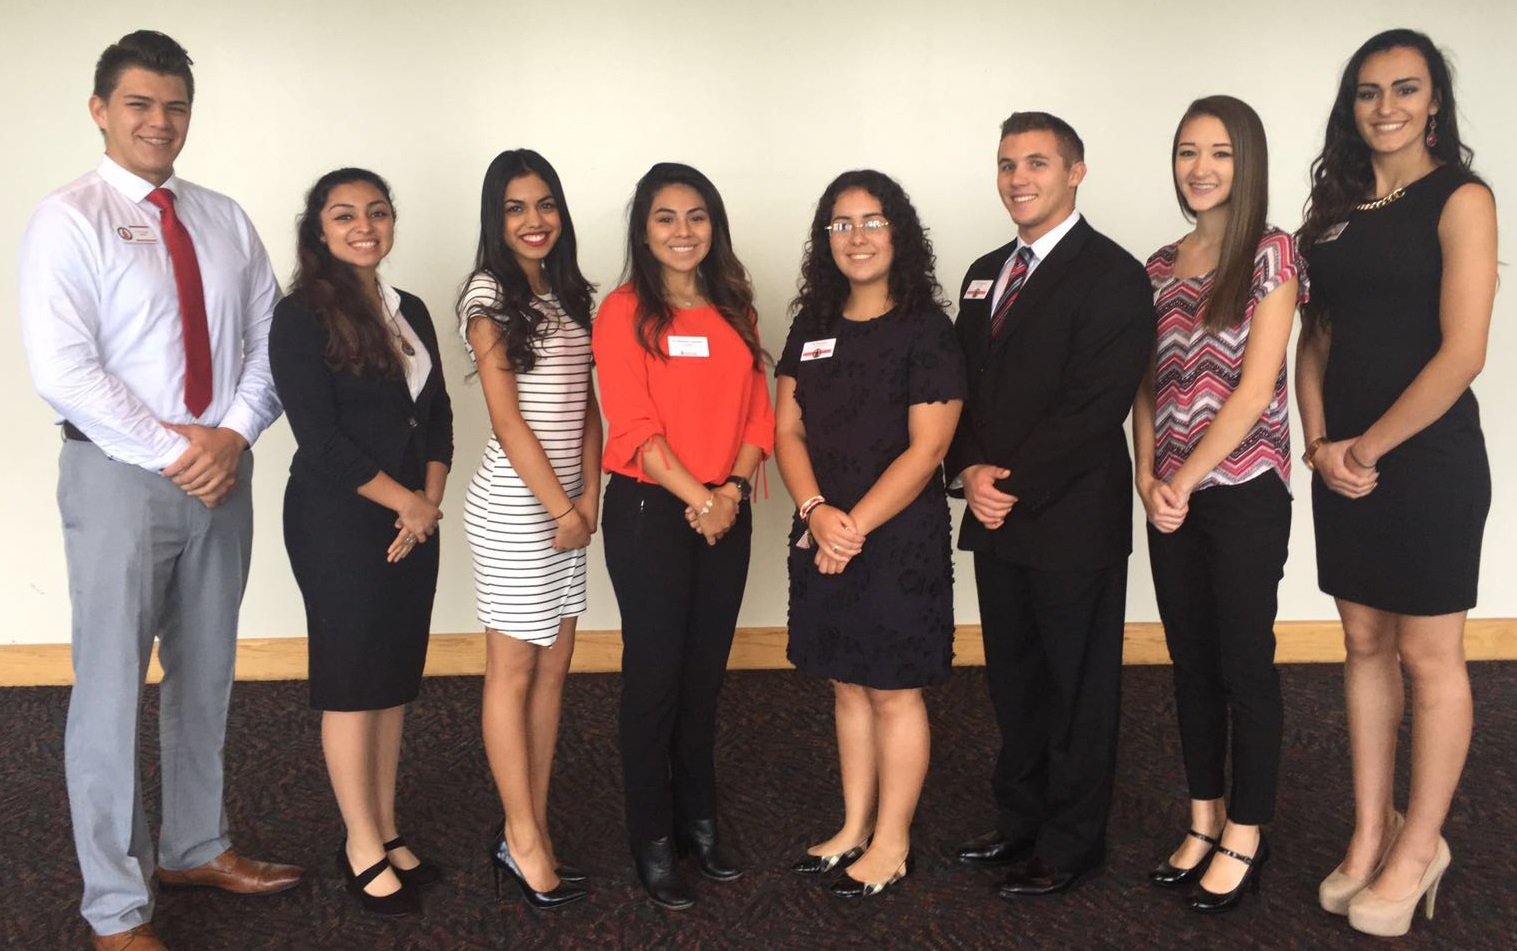 Pre-Pharmacy Named Best Overall Organization at UIW & All Officers Entering Feik in the Fall